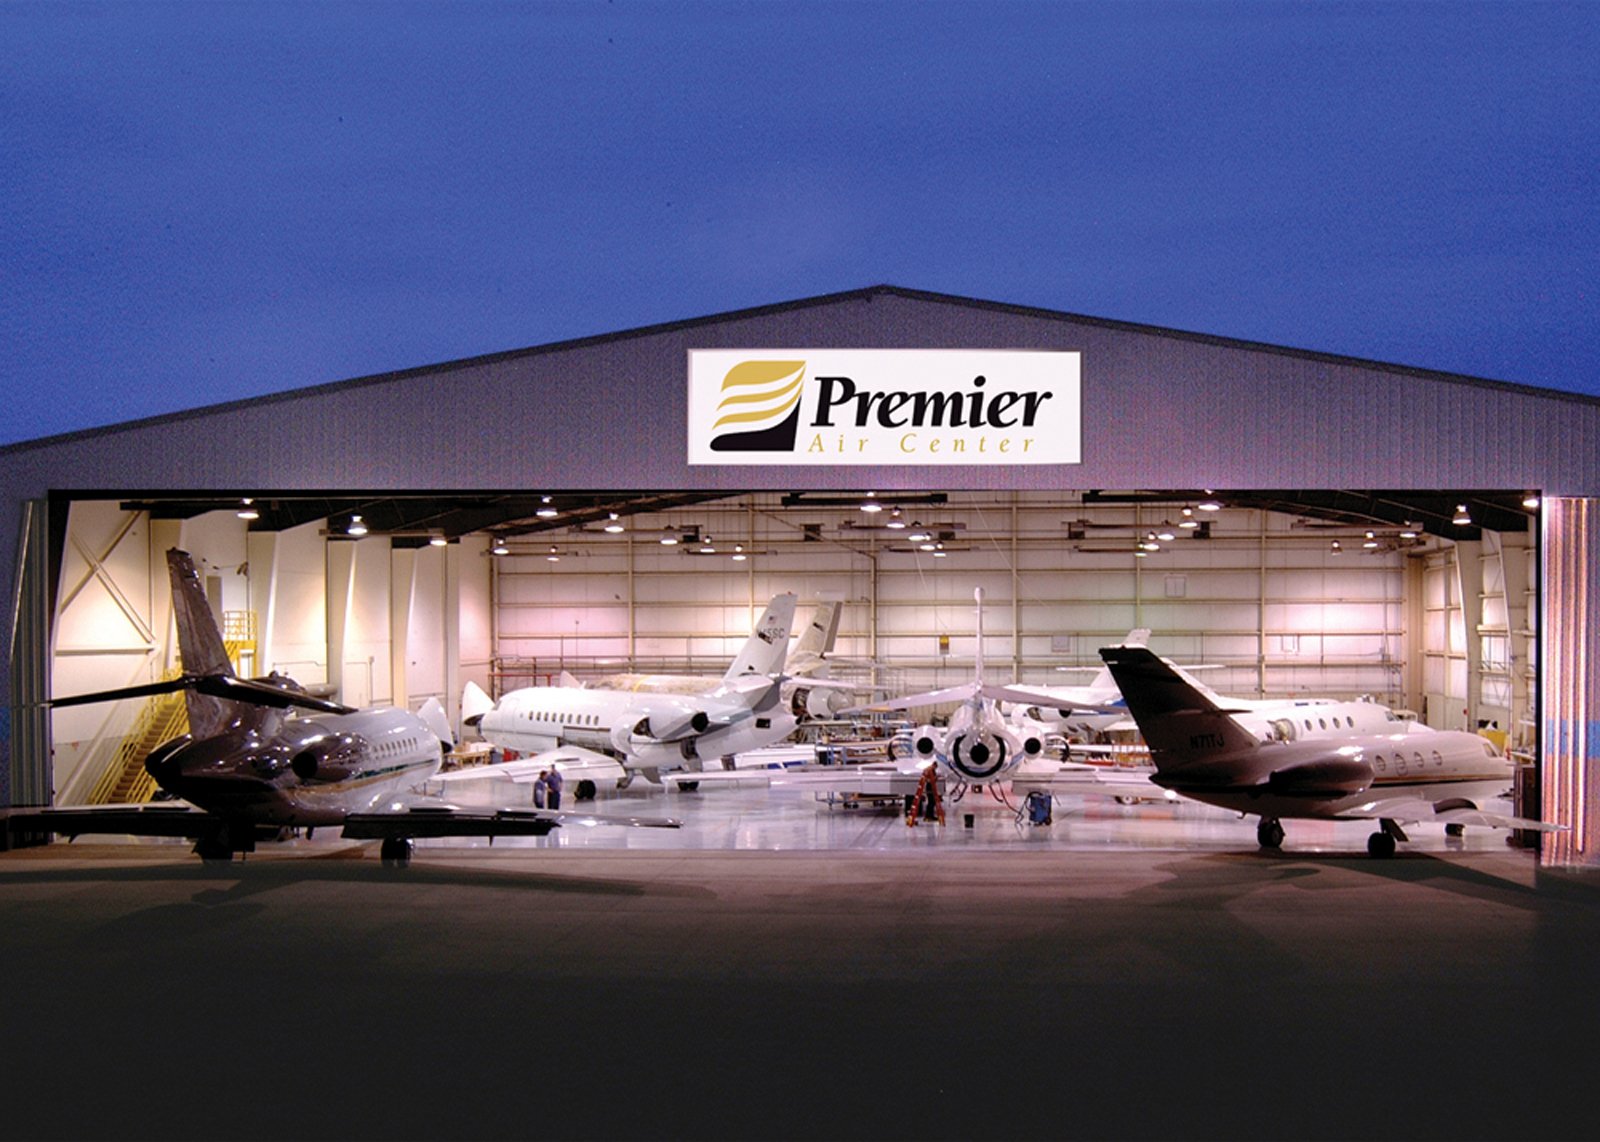 Premier Air Center & West Star Aviation Cover All Bases